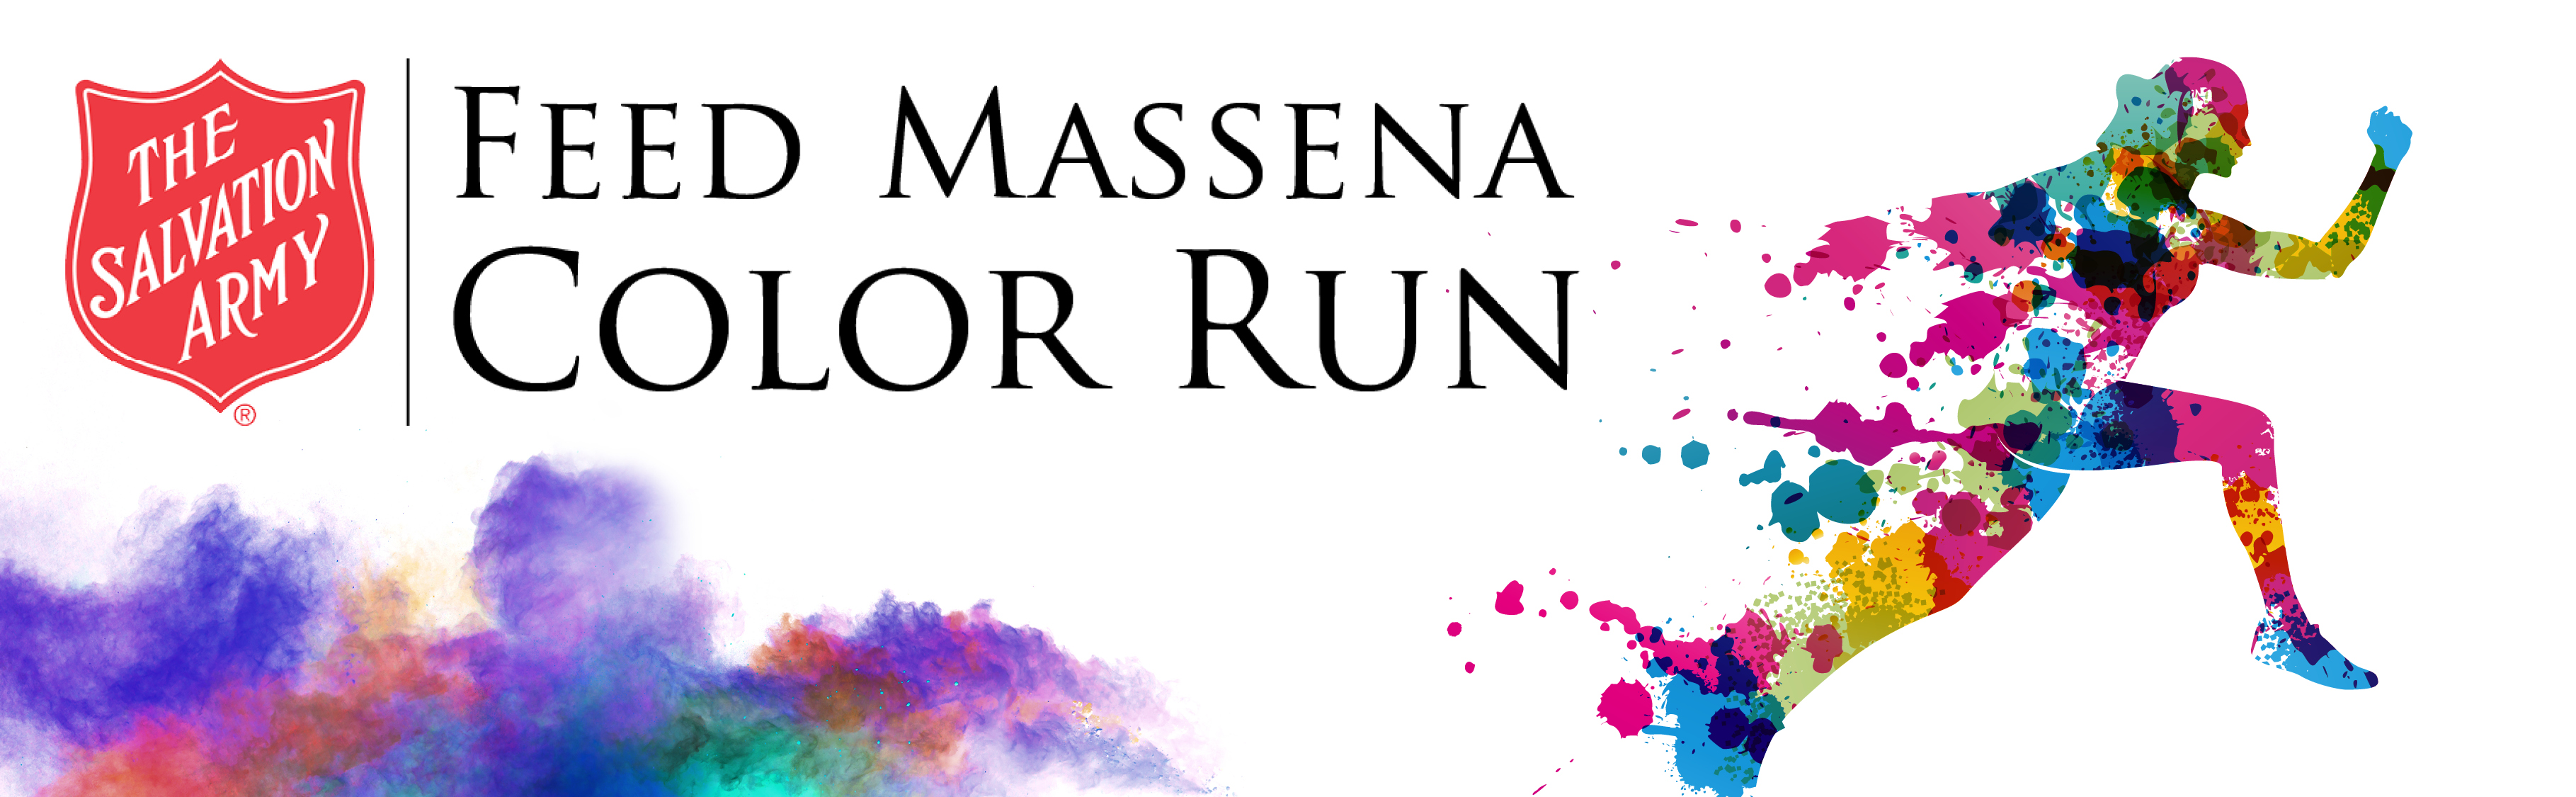 Color Run Massena